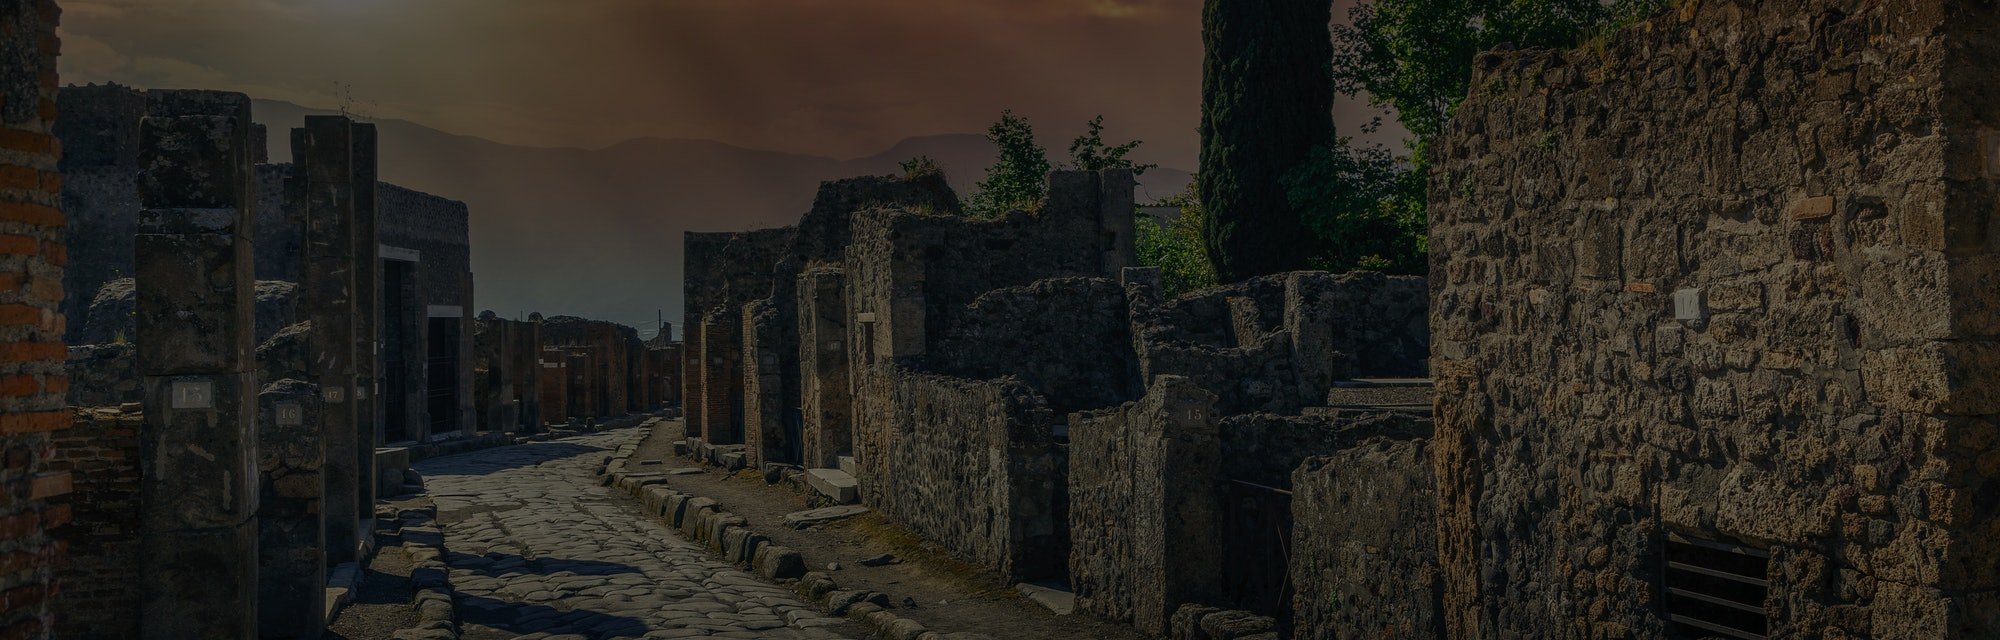 Old stones paved road at sunset in Pompeii Archaeological site.